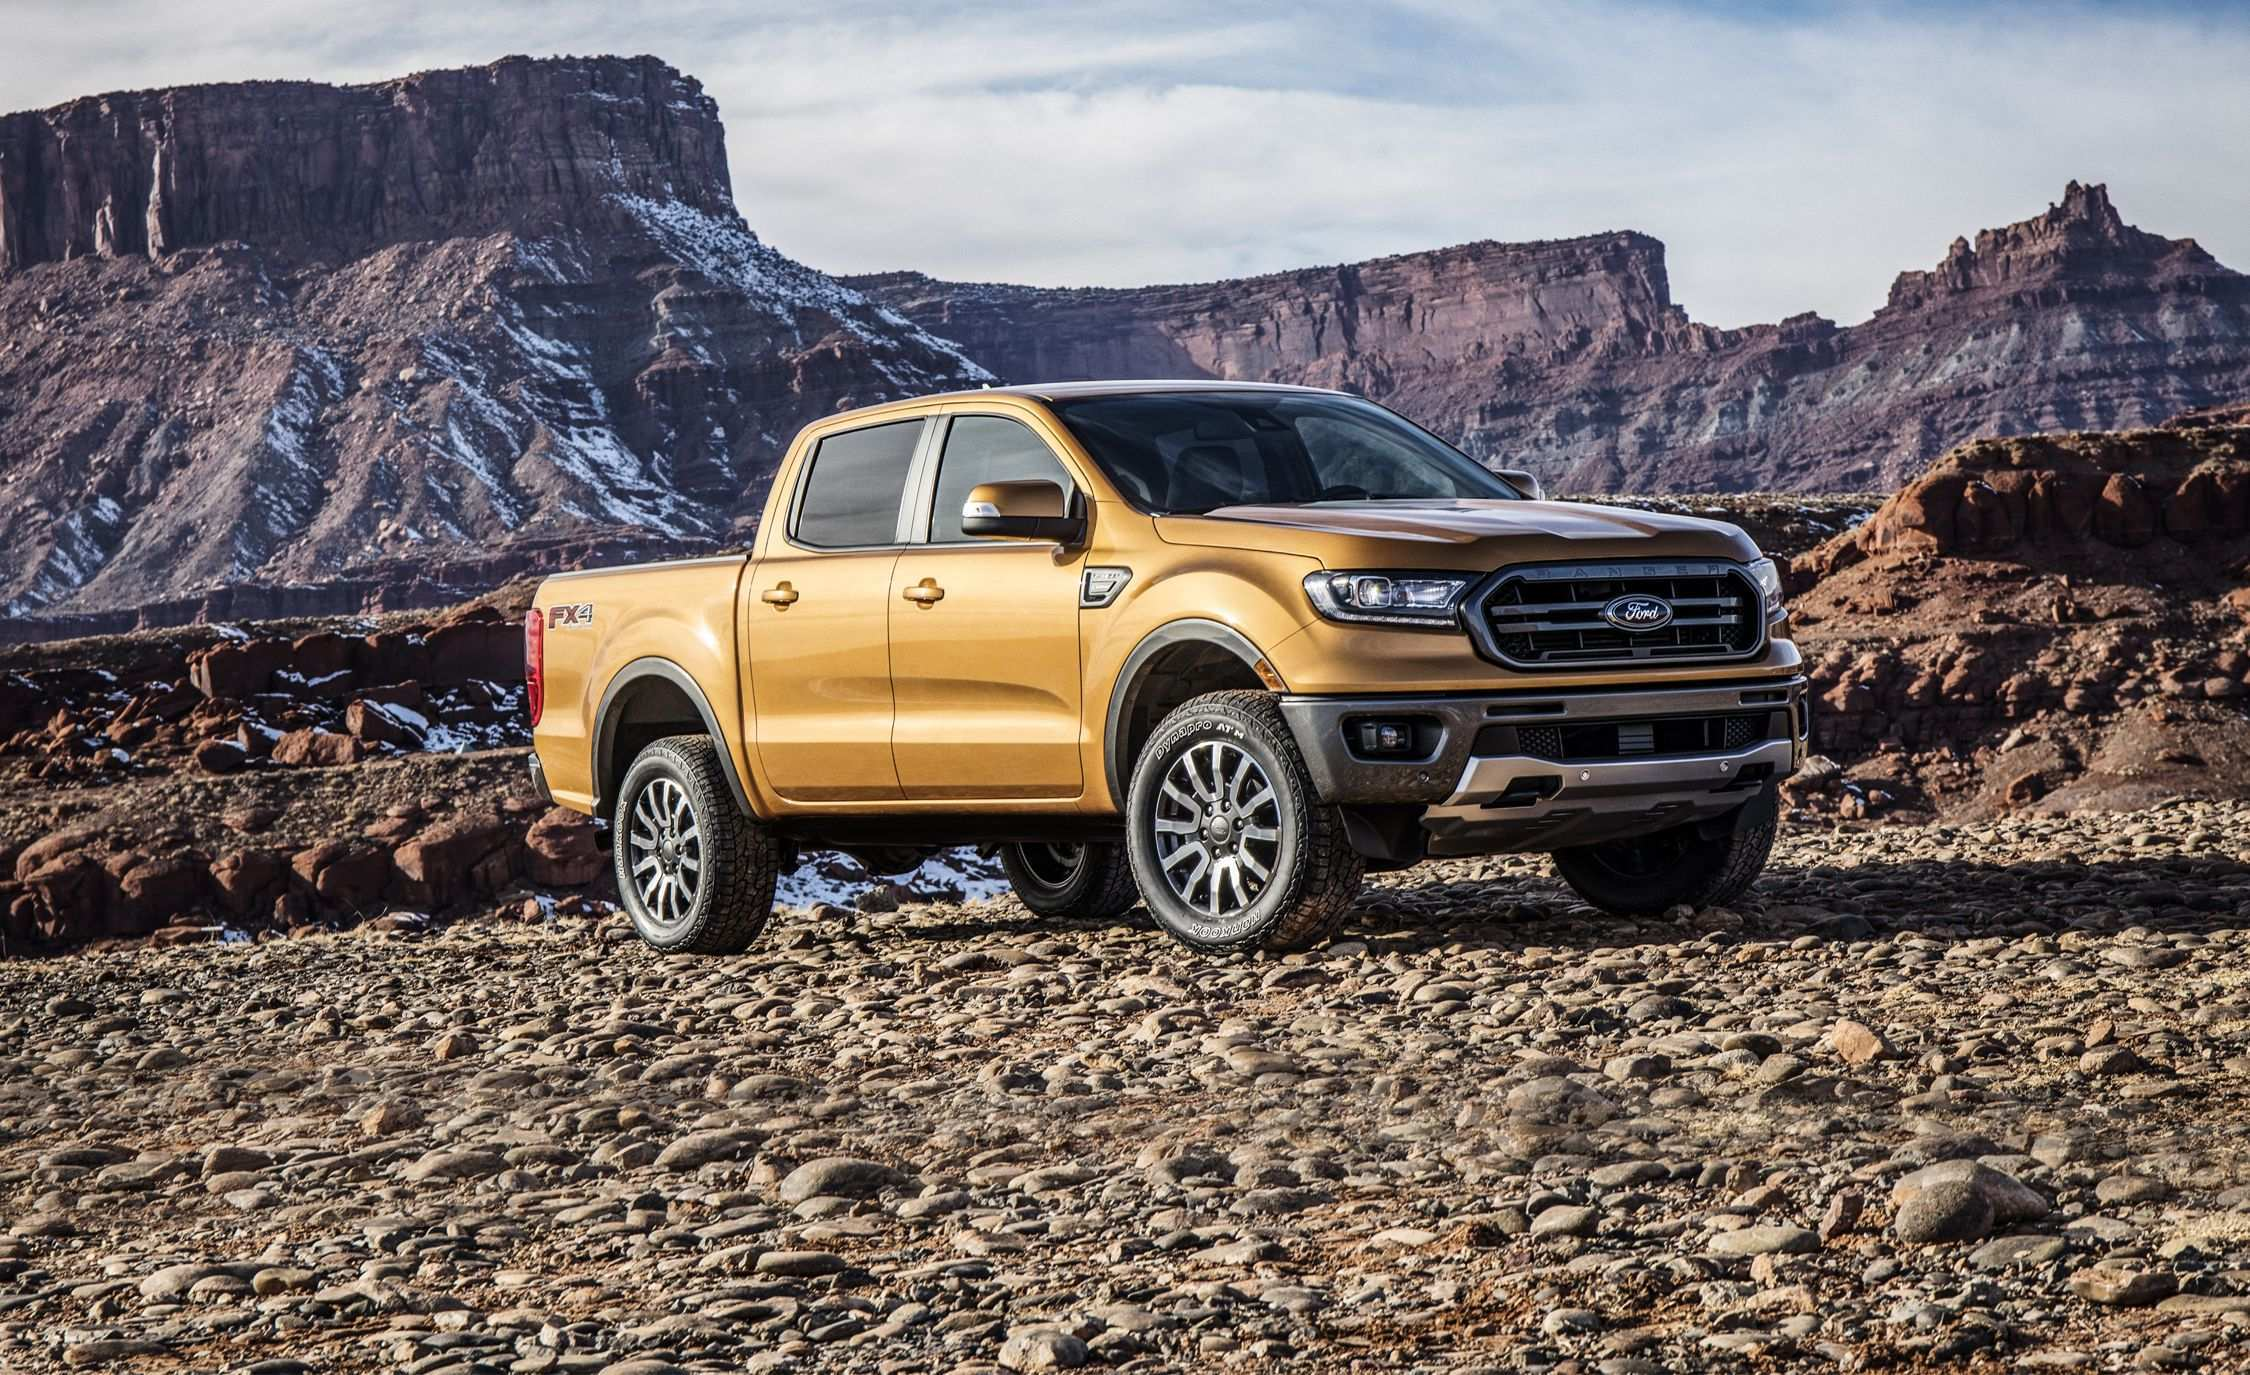 78 All New 2019 Ford Ranger Usa Specs Speed Test by 2019 Ford Ranger Usa Specs